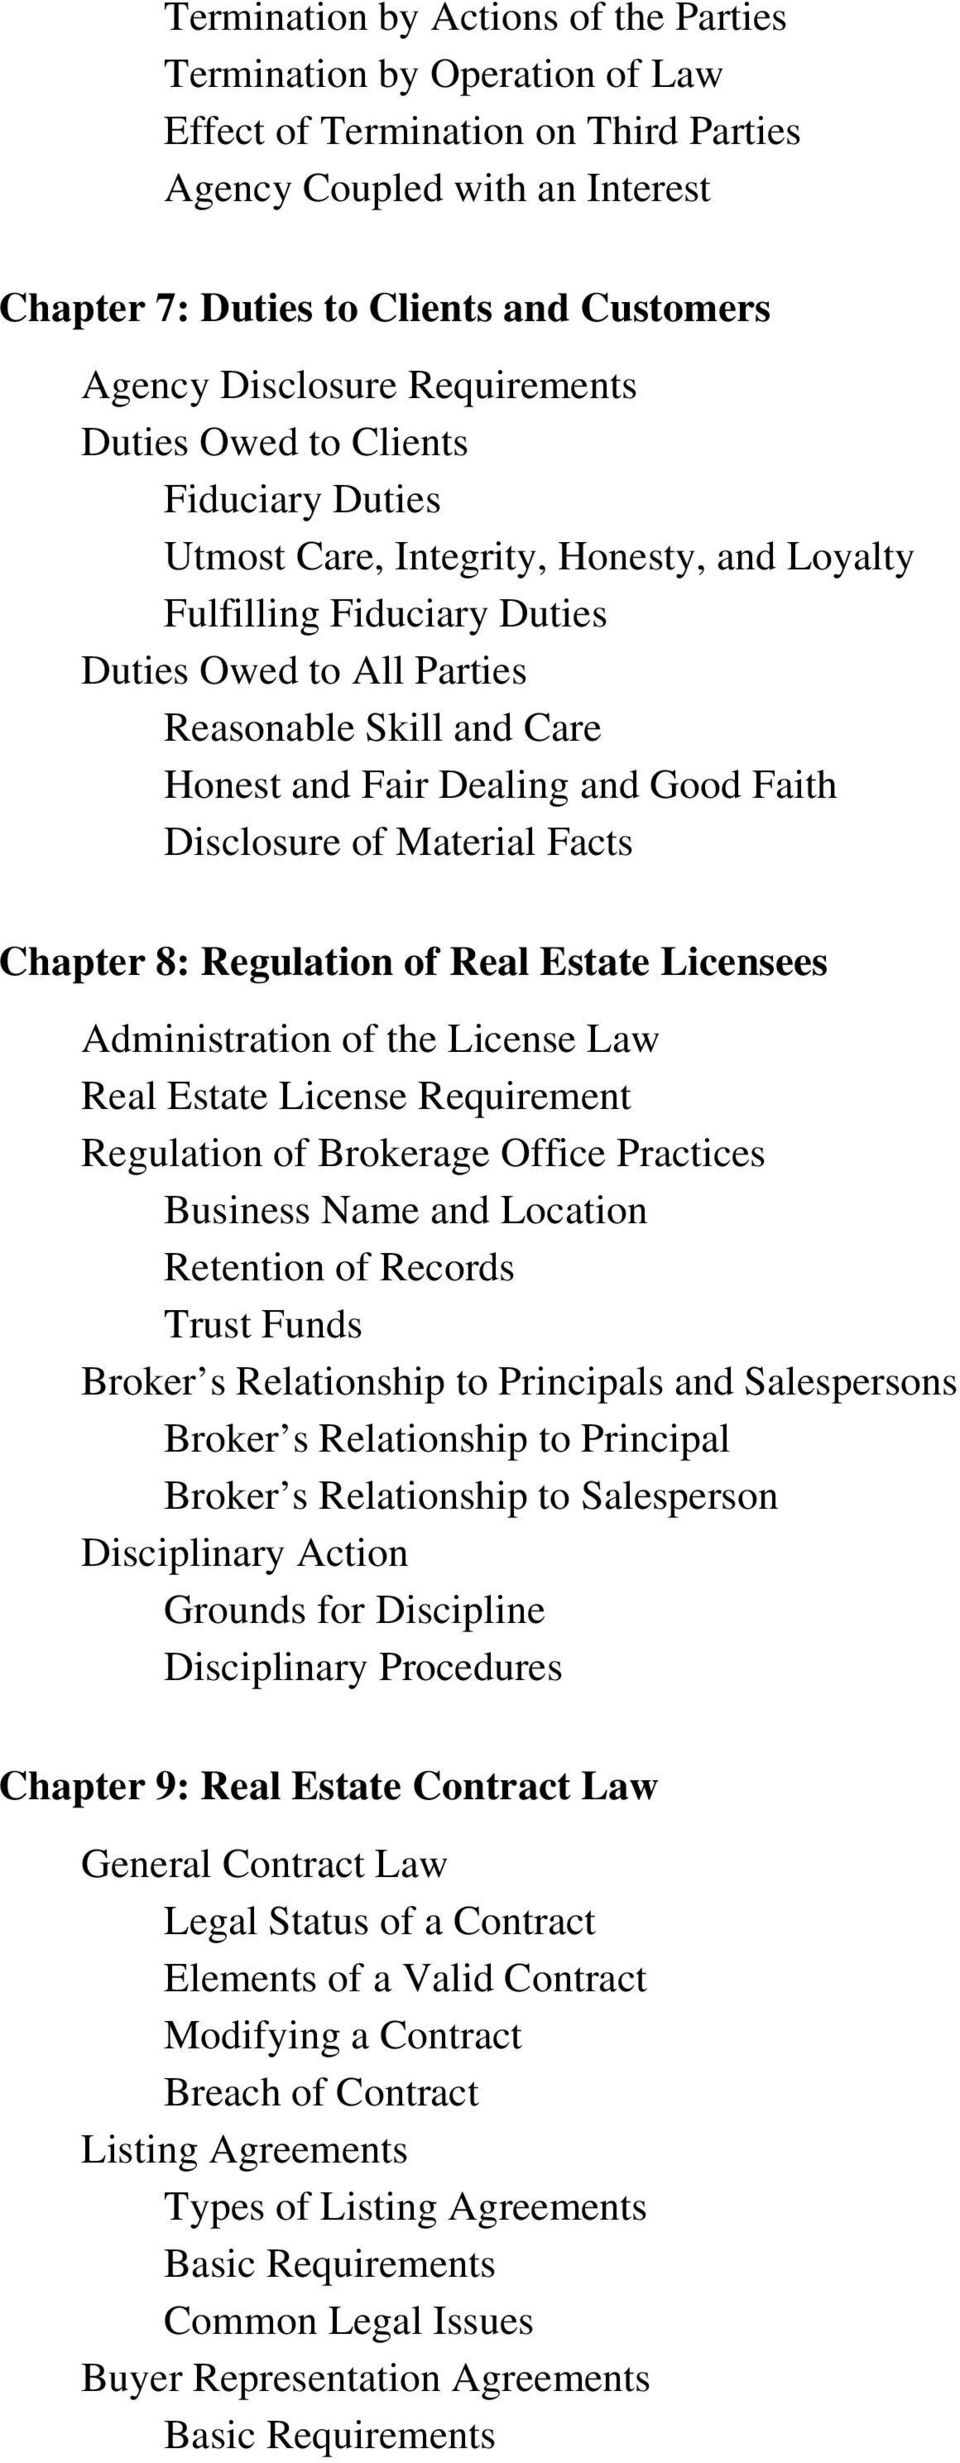 and Fair Dealing and Good Faith Disclosure of Material Facts Chapter 8: Regulation of Real Estate Licensees Administration of the License Law Real Estate License Requirement Regulation of Brokerage